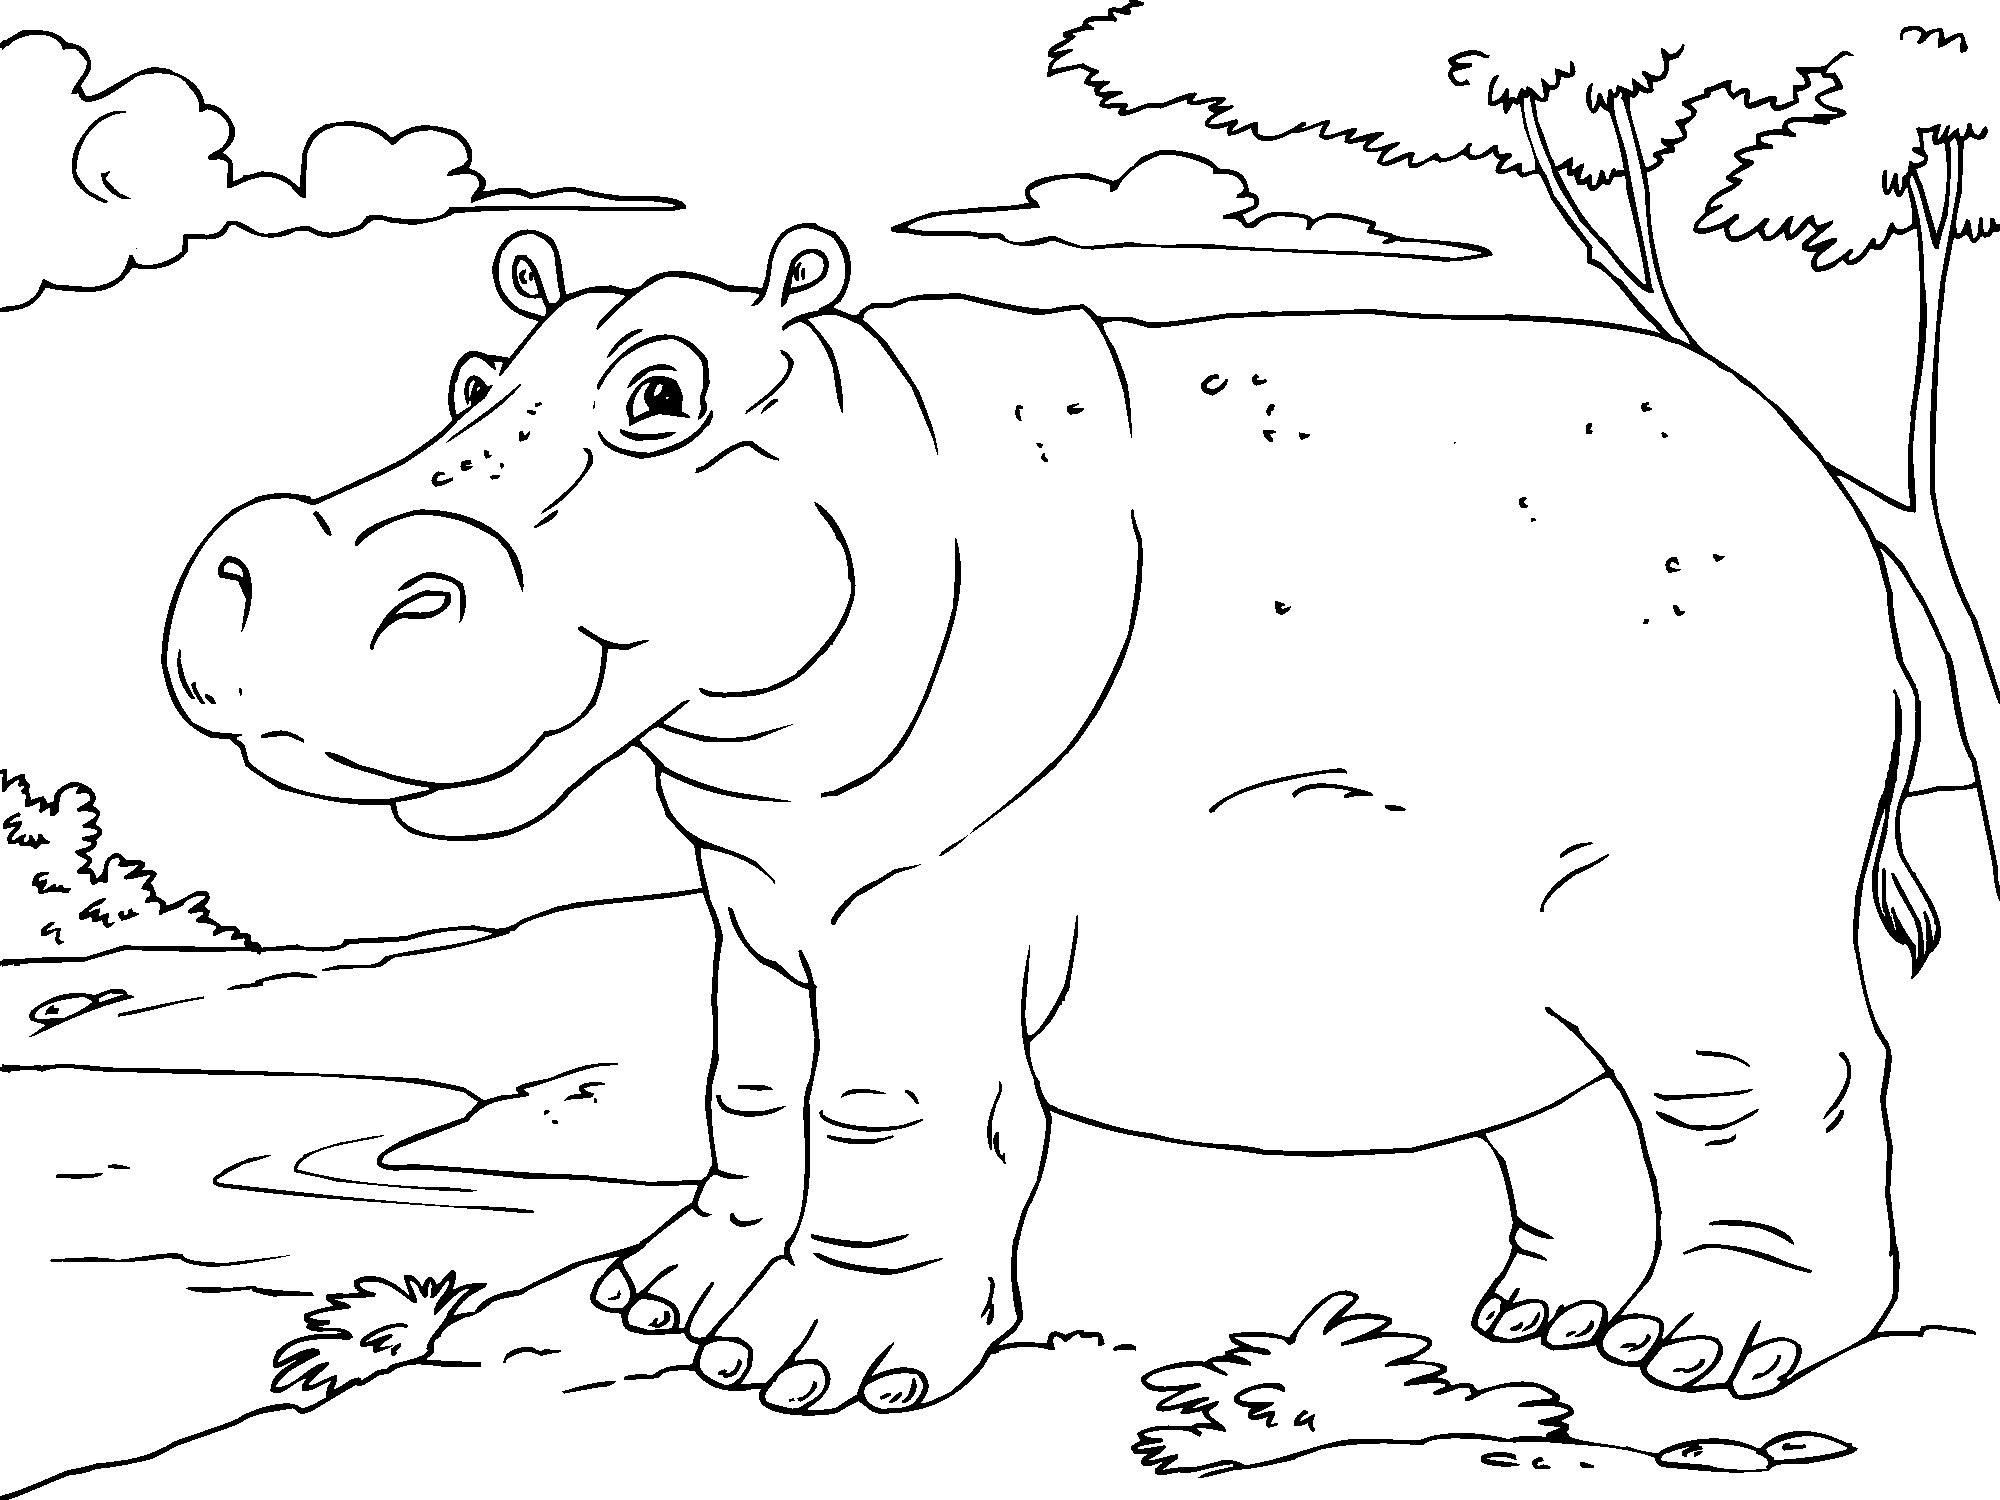 Colouring Pages Hippo Coloring Pages In Painting Free Coloring - Free Printable Hippo Coloring Pages